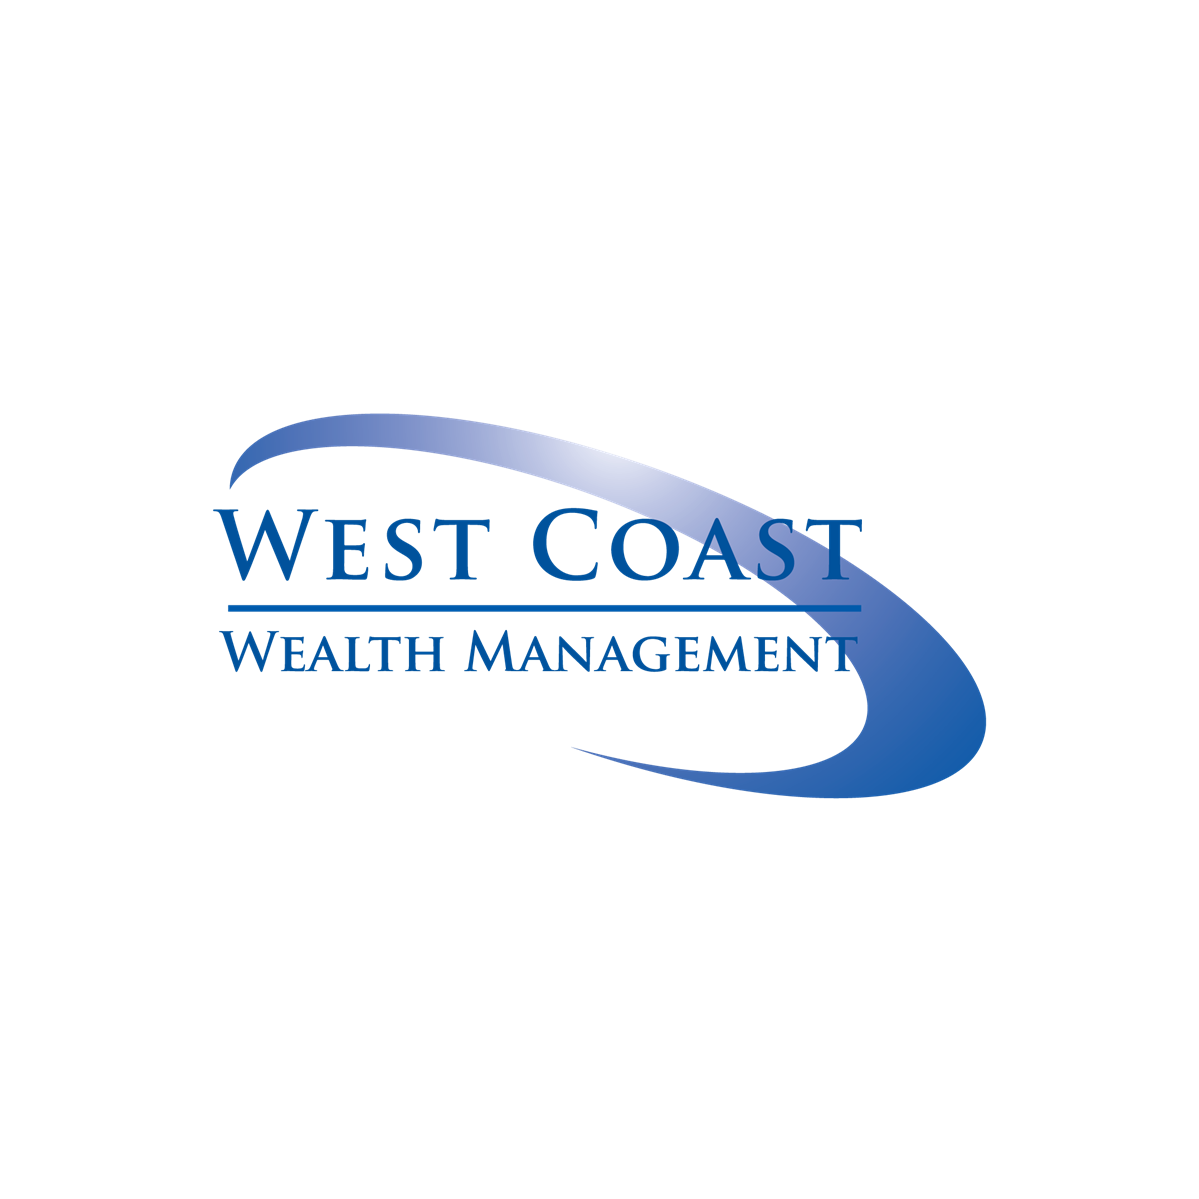 West Coast Wealth Management